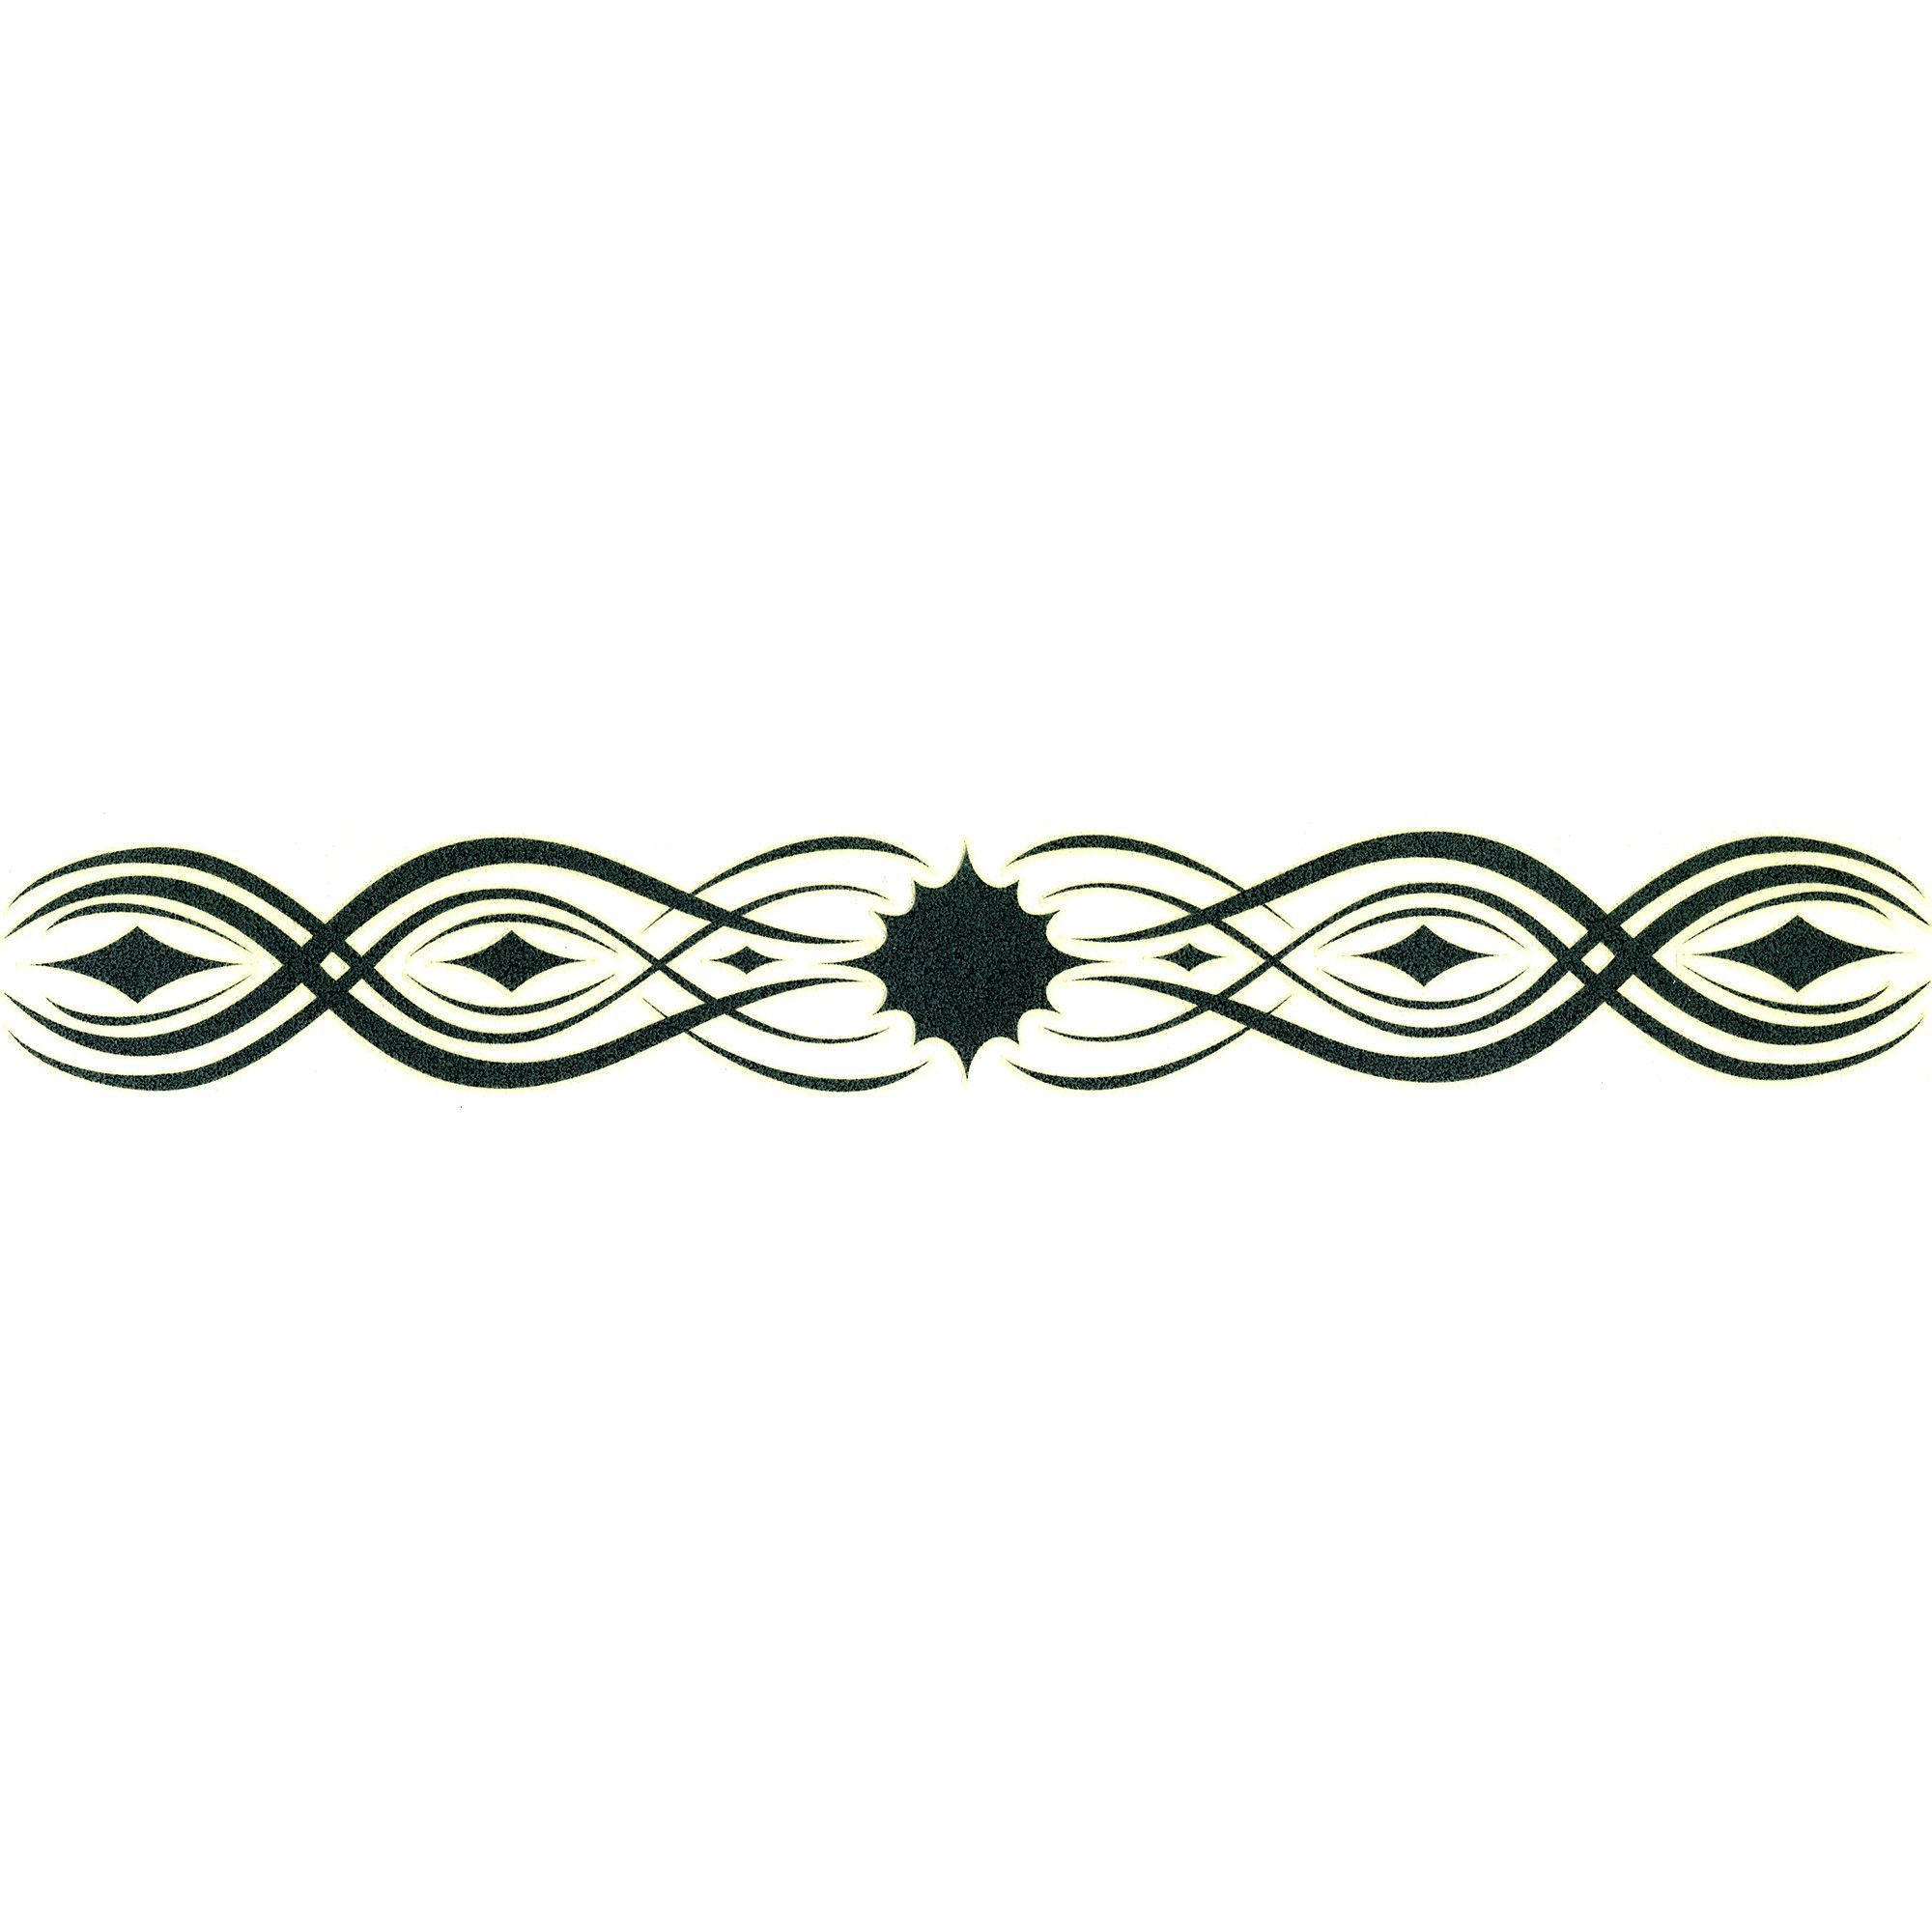 ad8ba9383 No. I Tribal Glow-n-Dark Arm Band Temporary Tattoo 1.5x9 | Tattoo ...